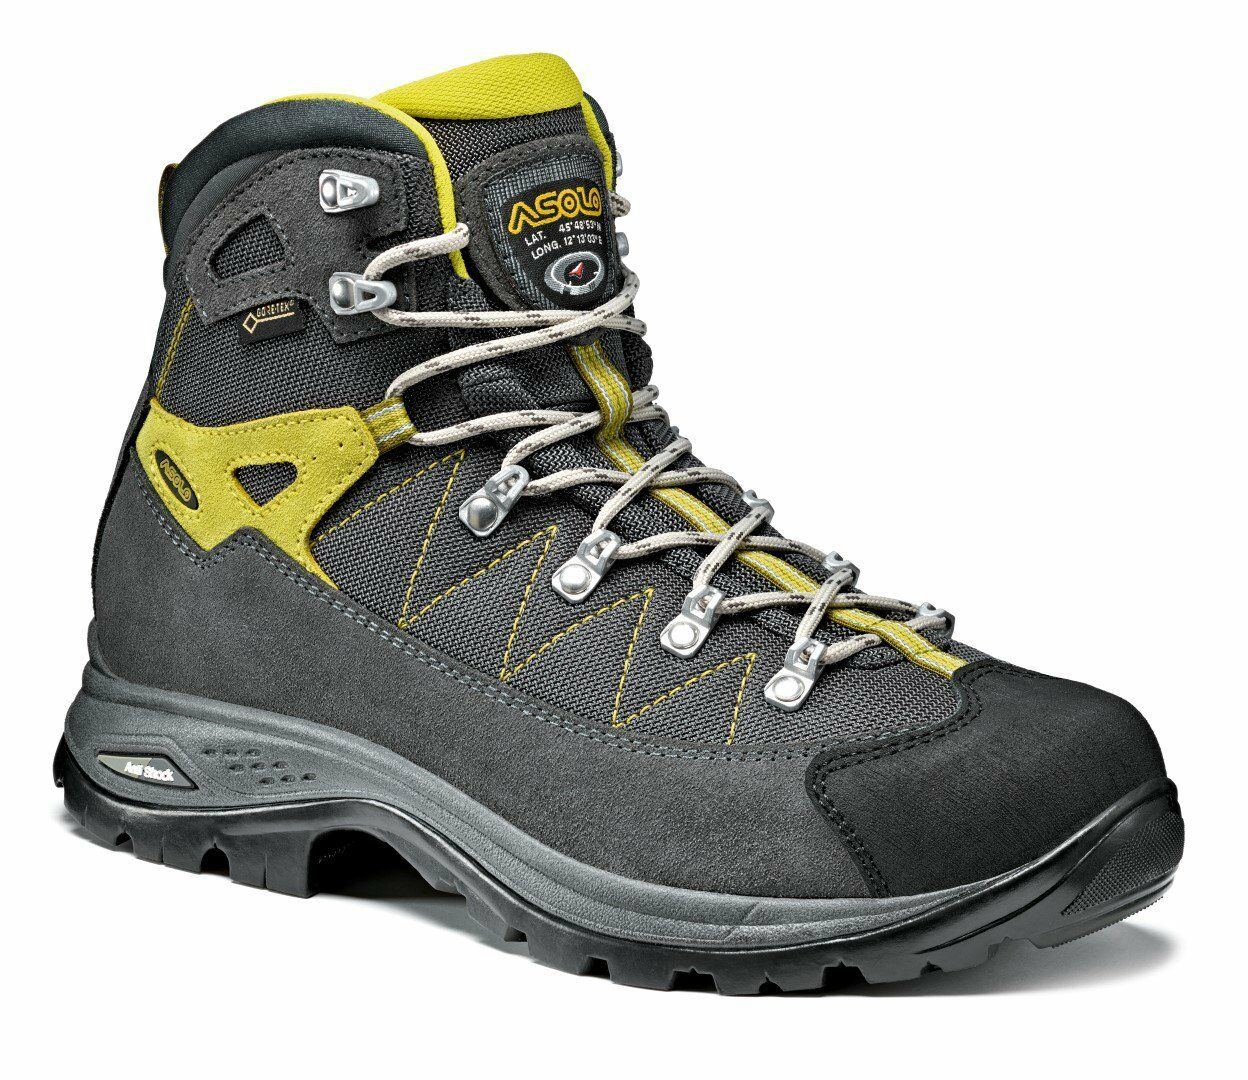 ASOLO FINDER GV MM GORETEX MAN SHOES shoes TREKKING HIKING A23102 A623